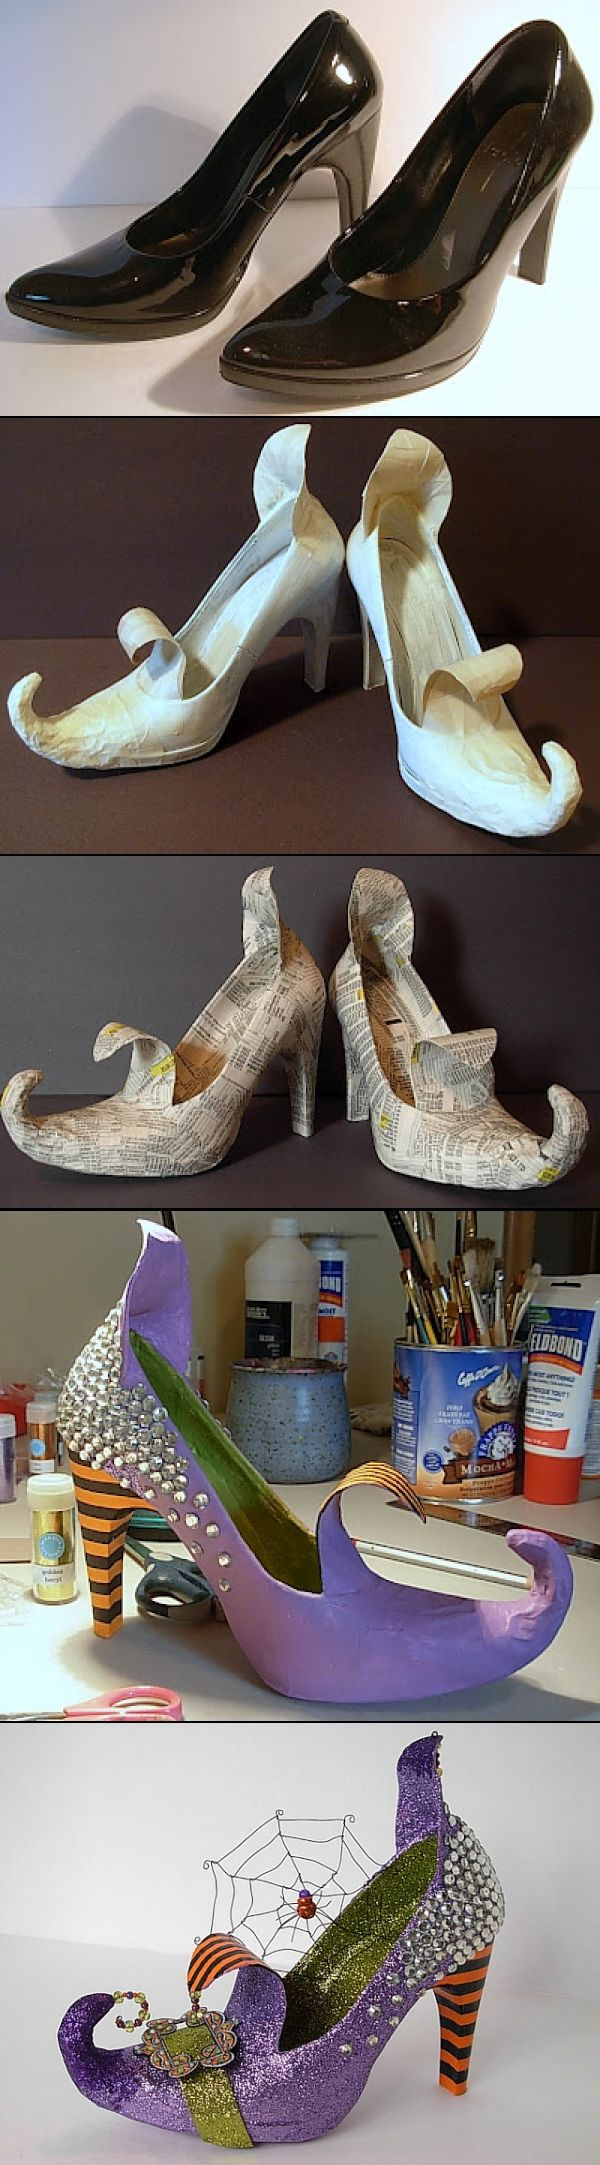 DIY witches shoes- certainly could scale down to kid size too (or could use…